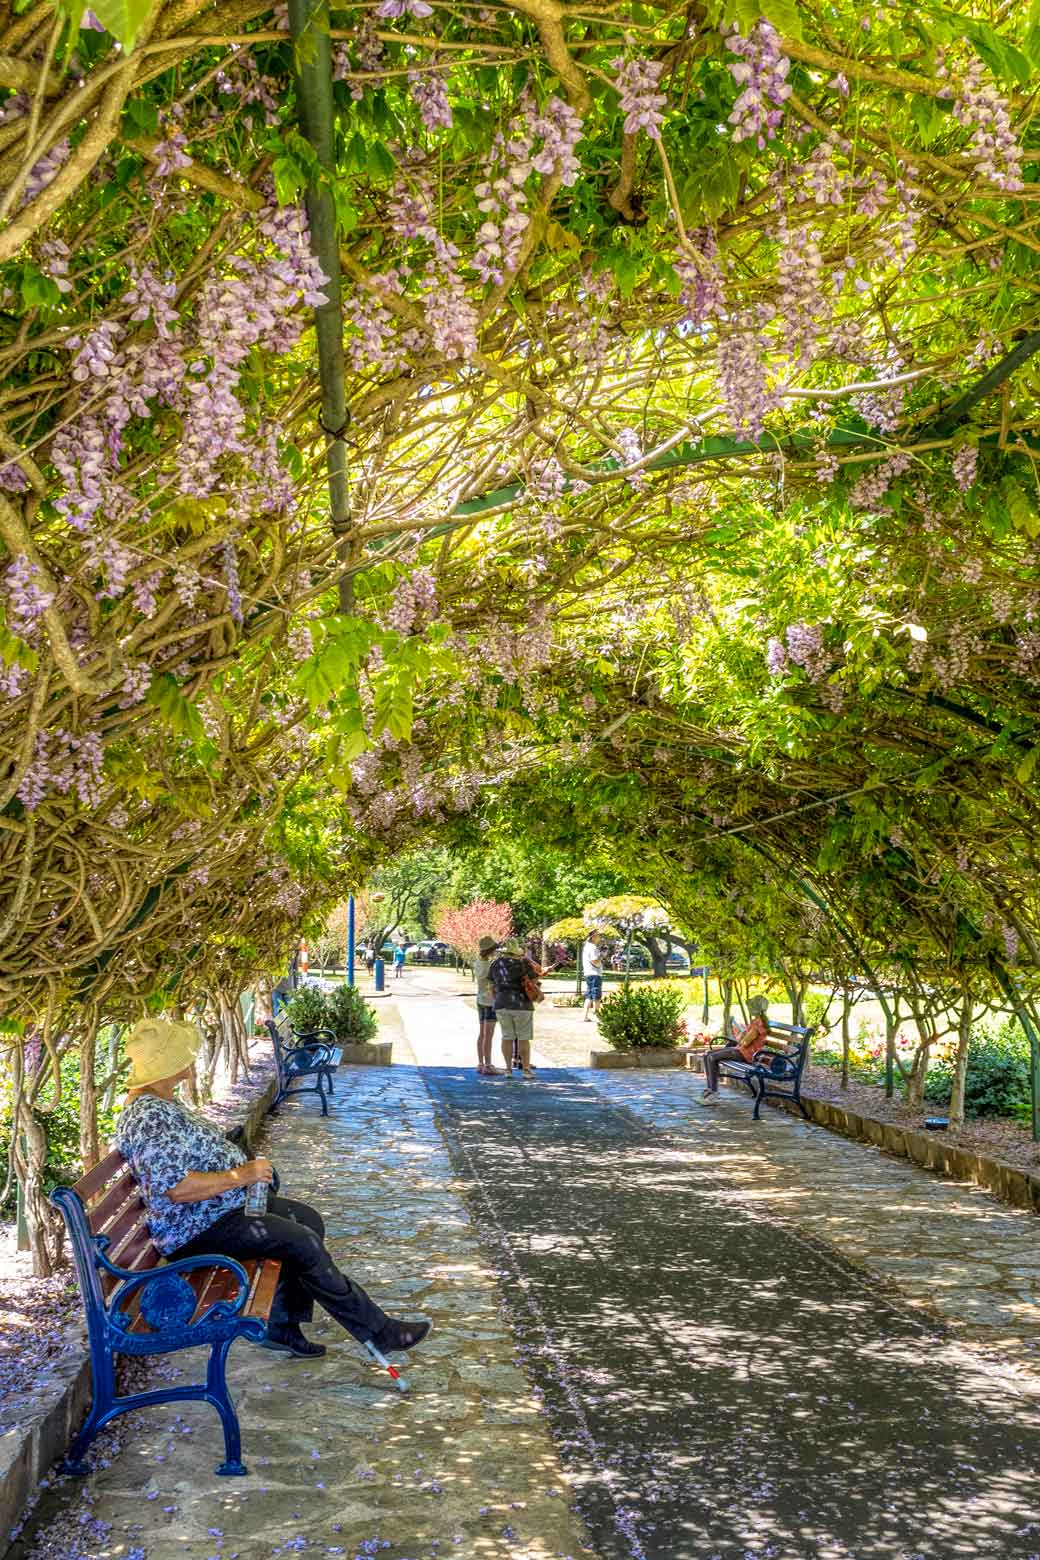 Wisteria tunnel at Laurel Bank Park in Toowoomba